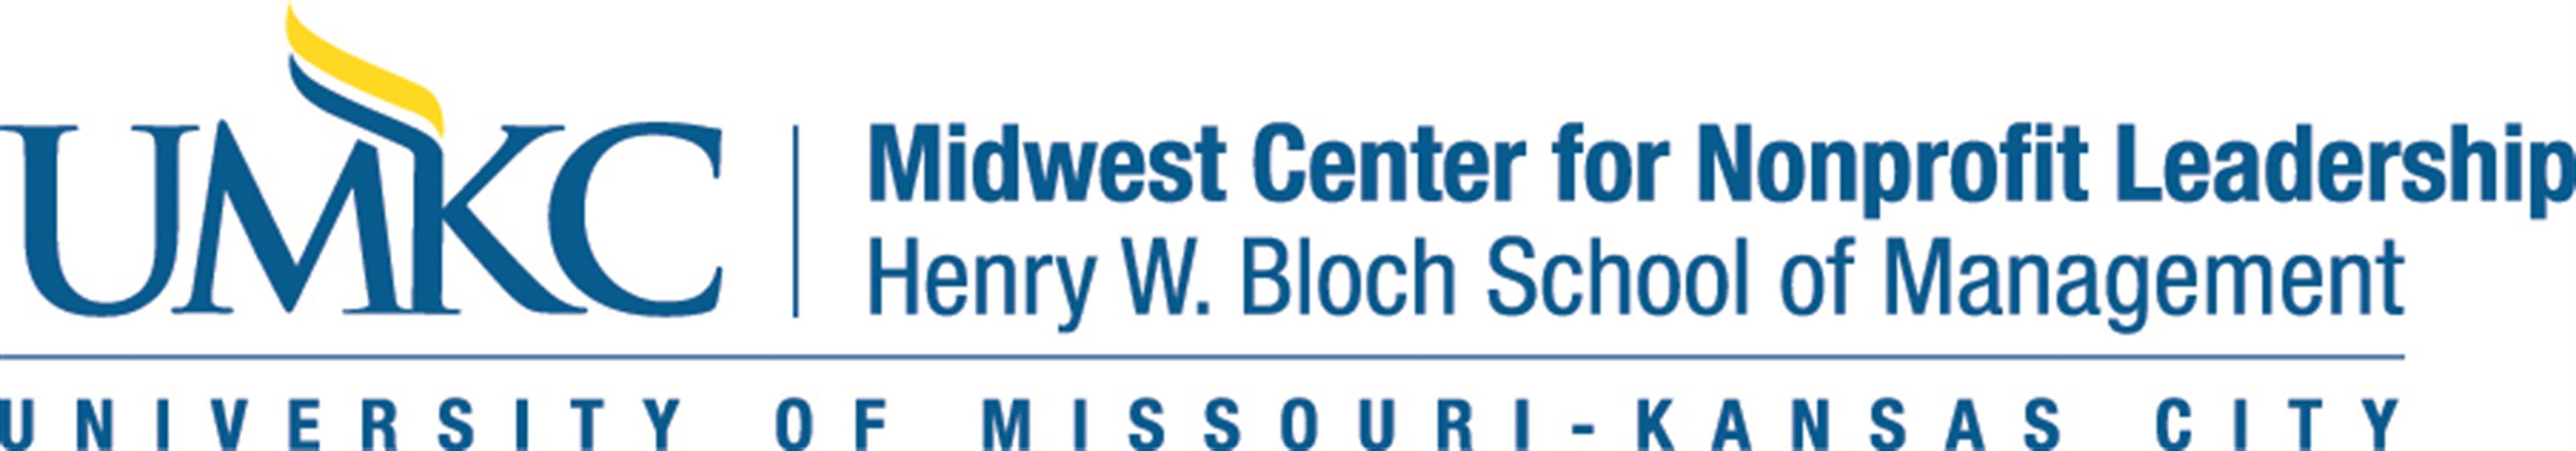 Midwest Center for Nonprofit Leadership UMKC